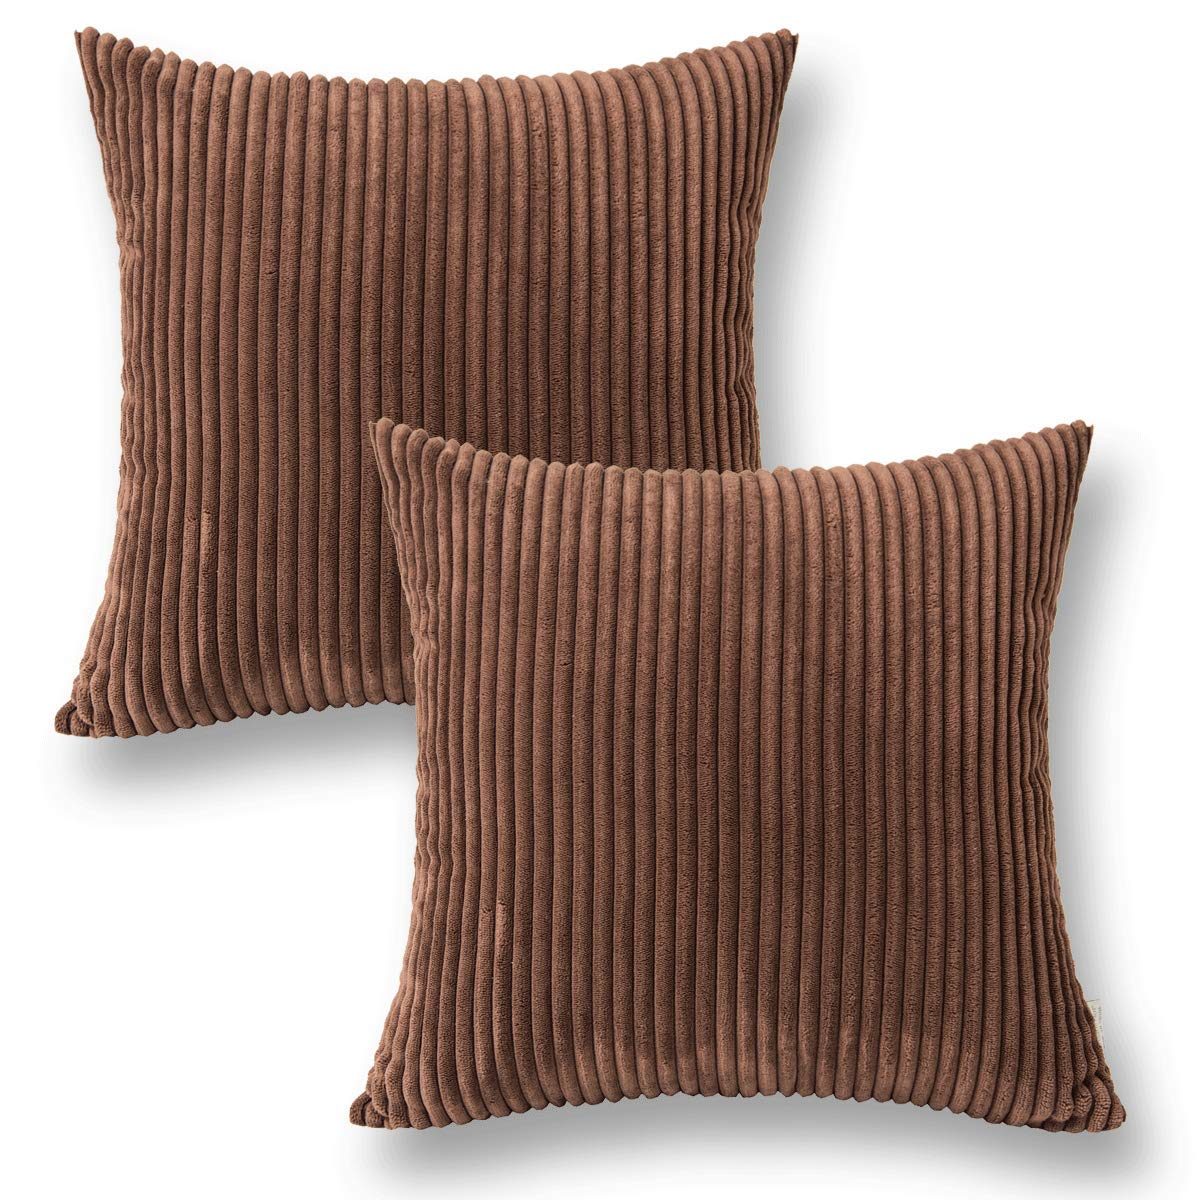 Jeanerlor Home Decoration Super Soft Corduroy with Vertical Stripes Euro Throw Pillow Sham Cushion Cover for Sofa, 18 x 18 inch (45 x 45 cm), Brown, Set of 2